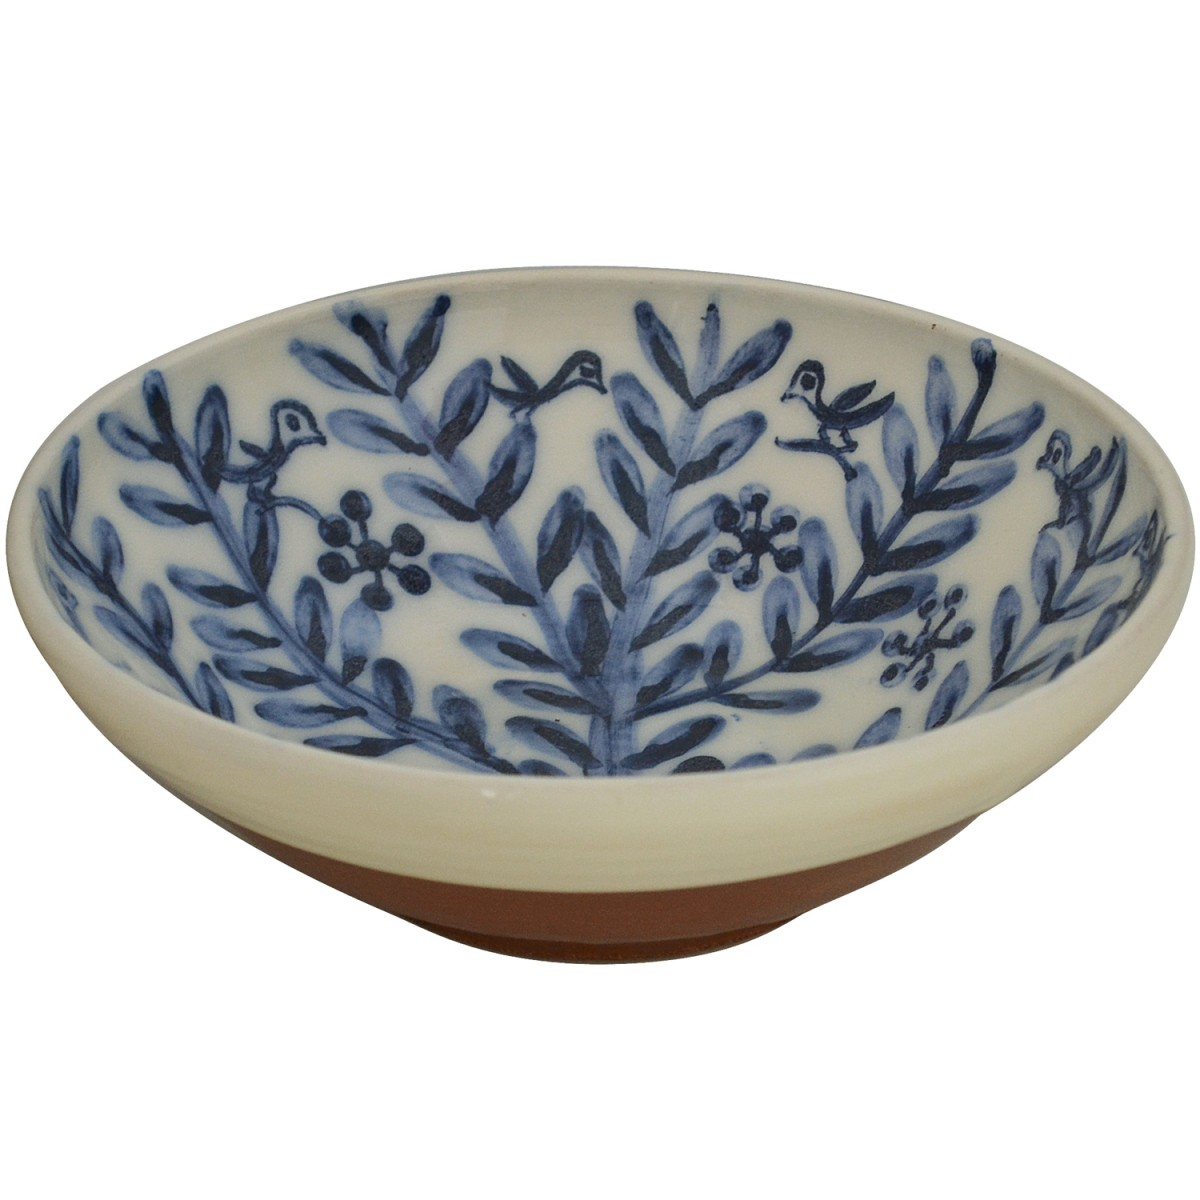 Decorative Bowls for Centerpieces -Tree with birds-1